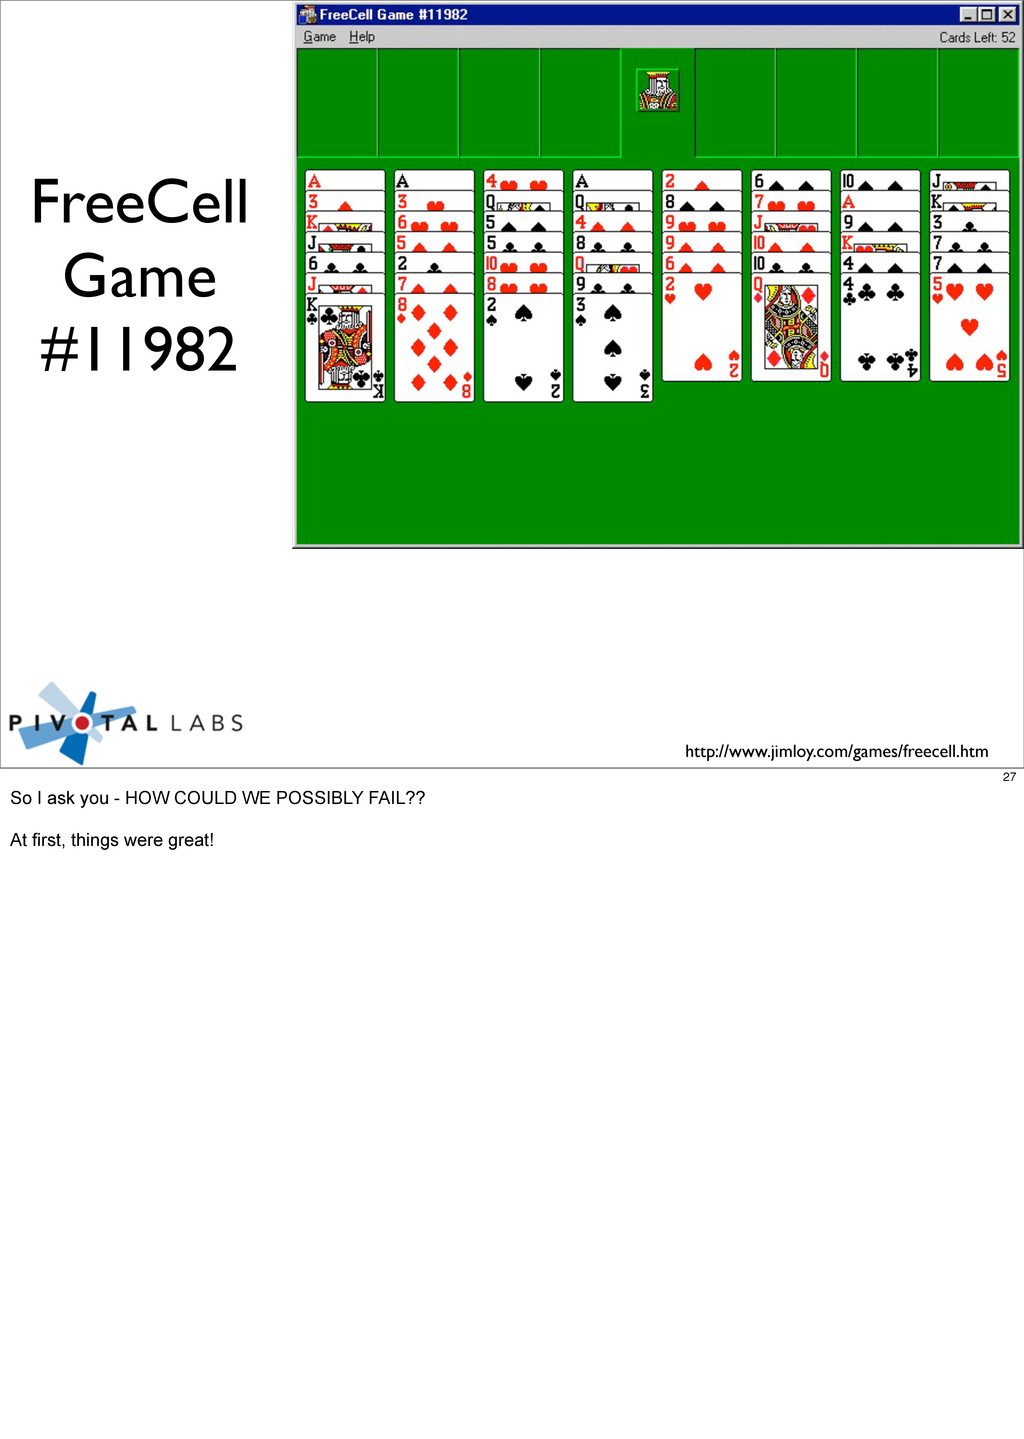 http://www.jimloy.com/games/freecell.htm FreeCe...